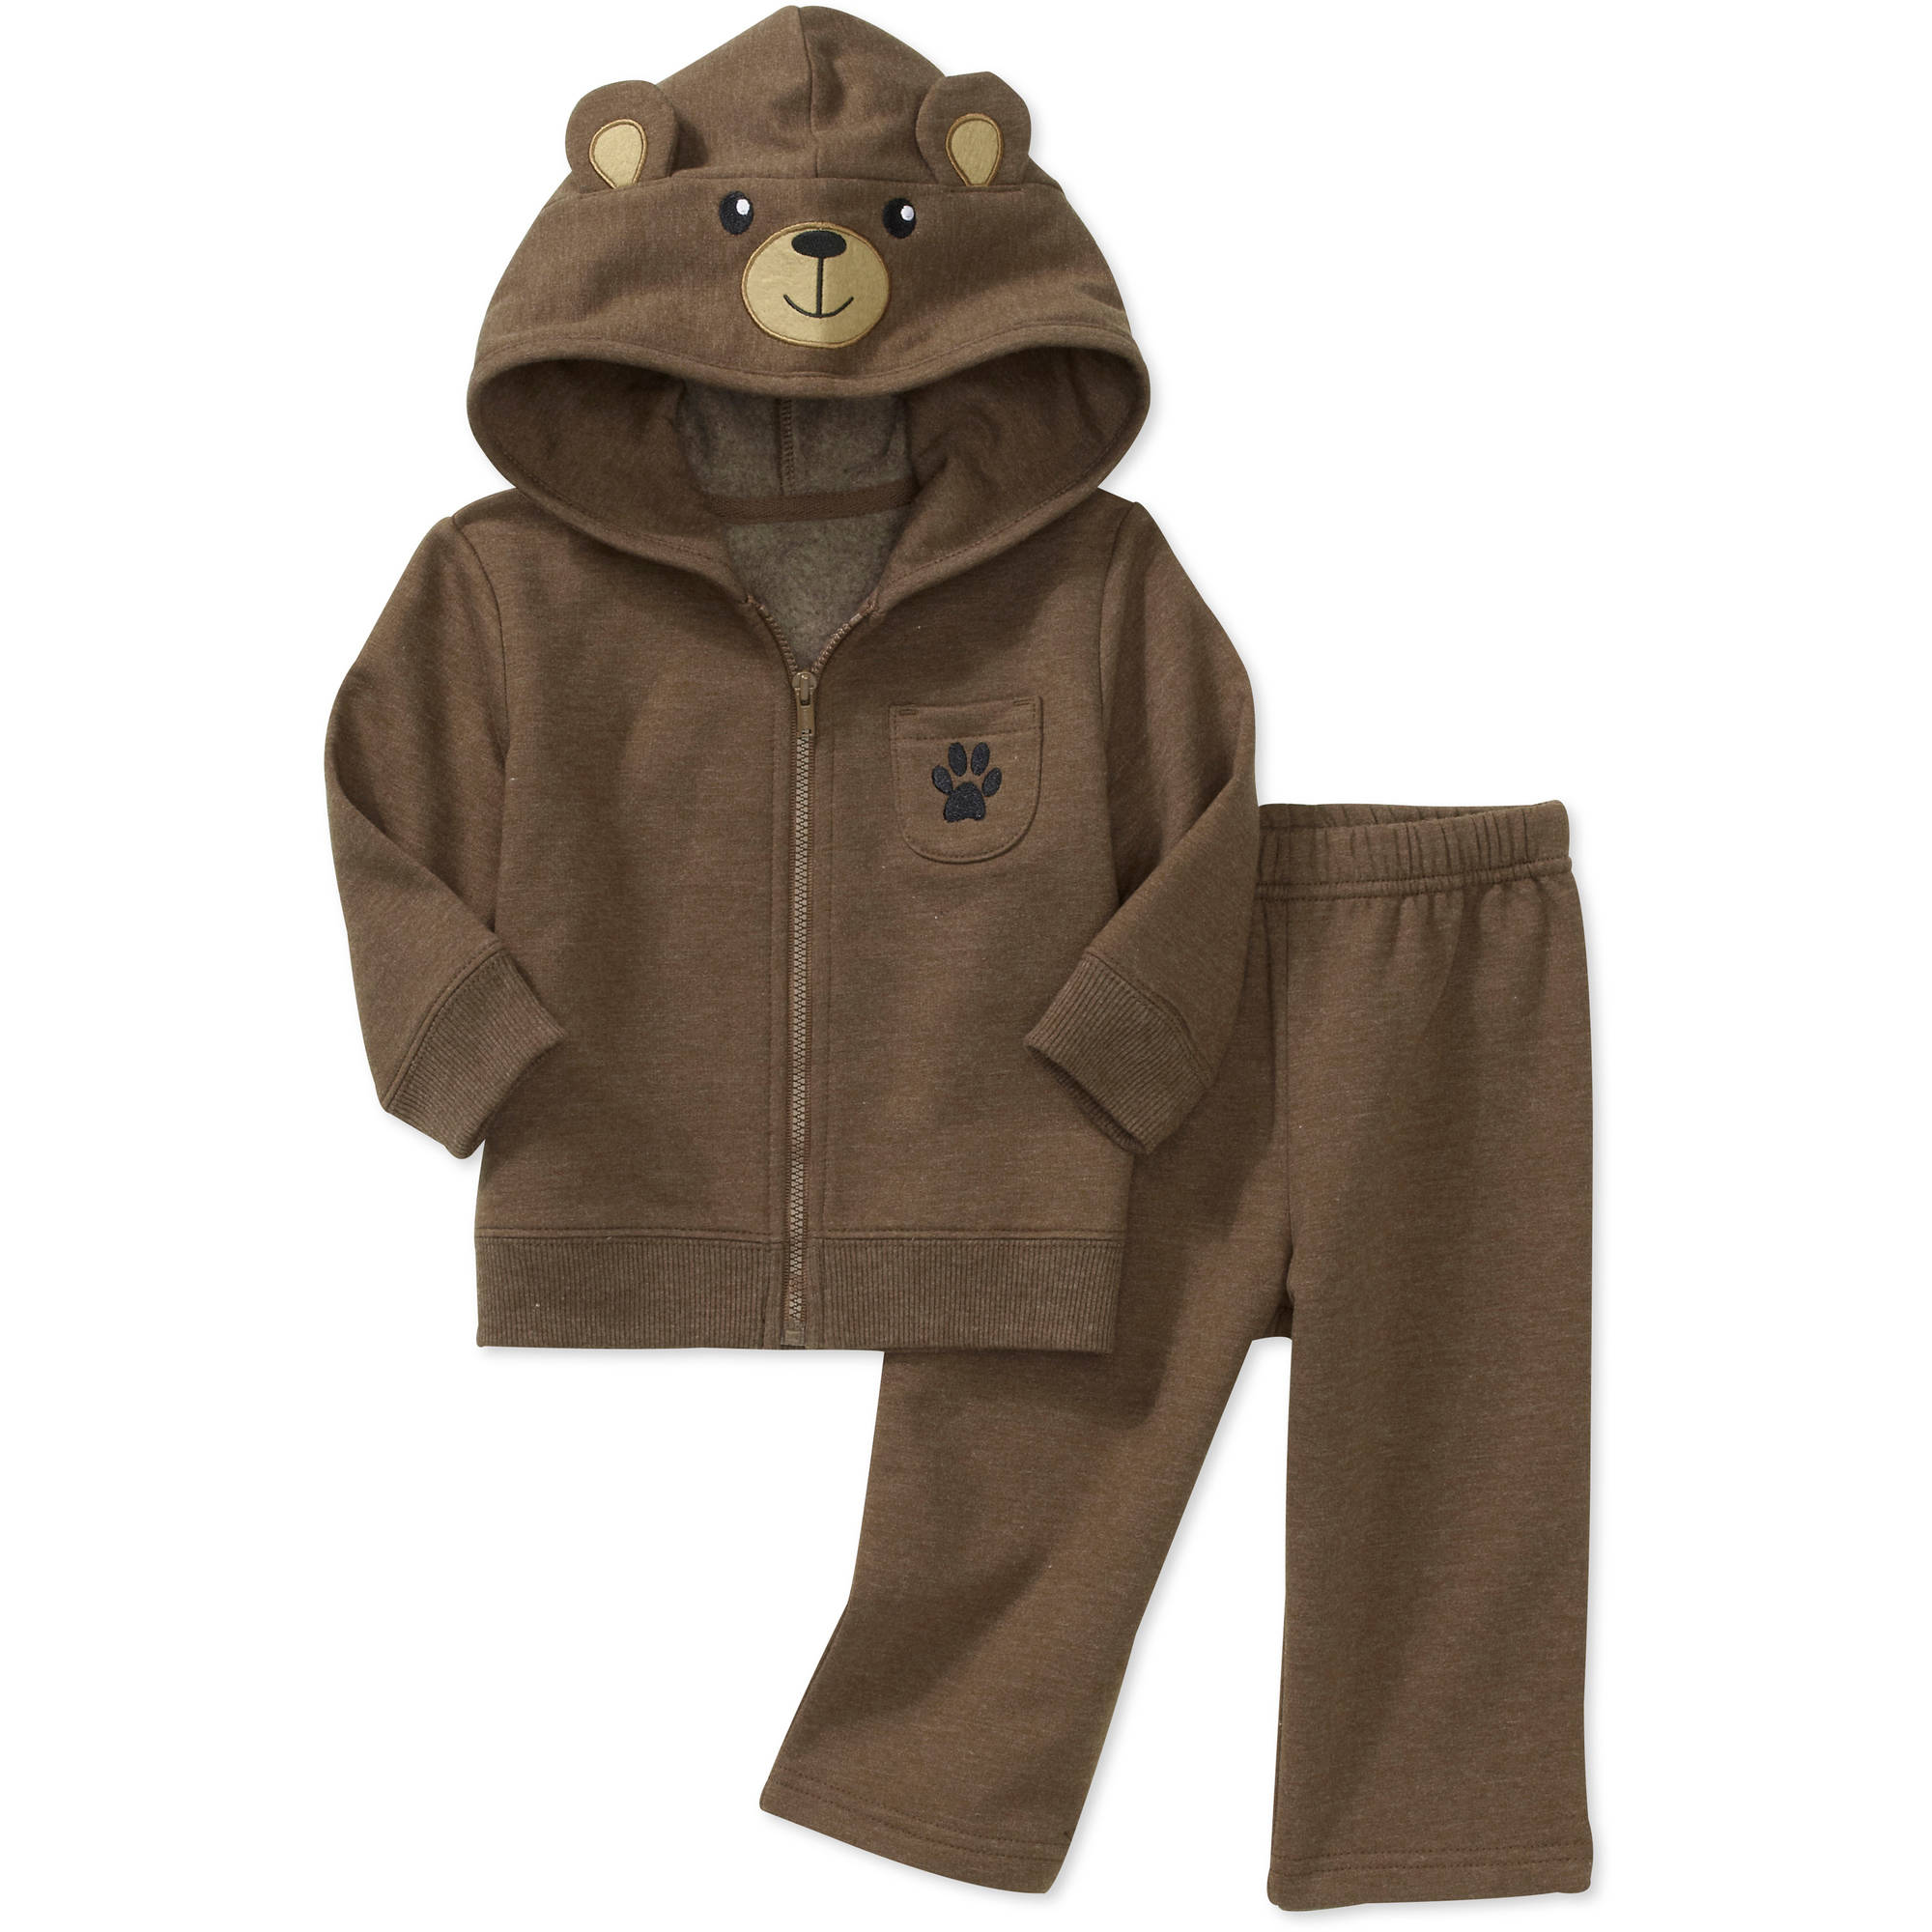 Newborn Boys' 2-Piece Animal Hoodie and Pants Set